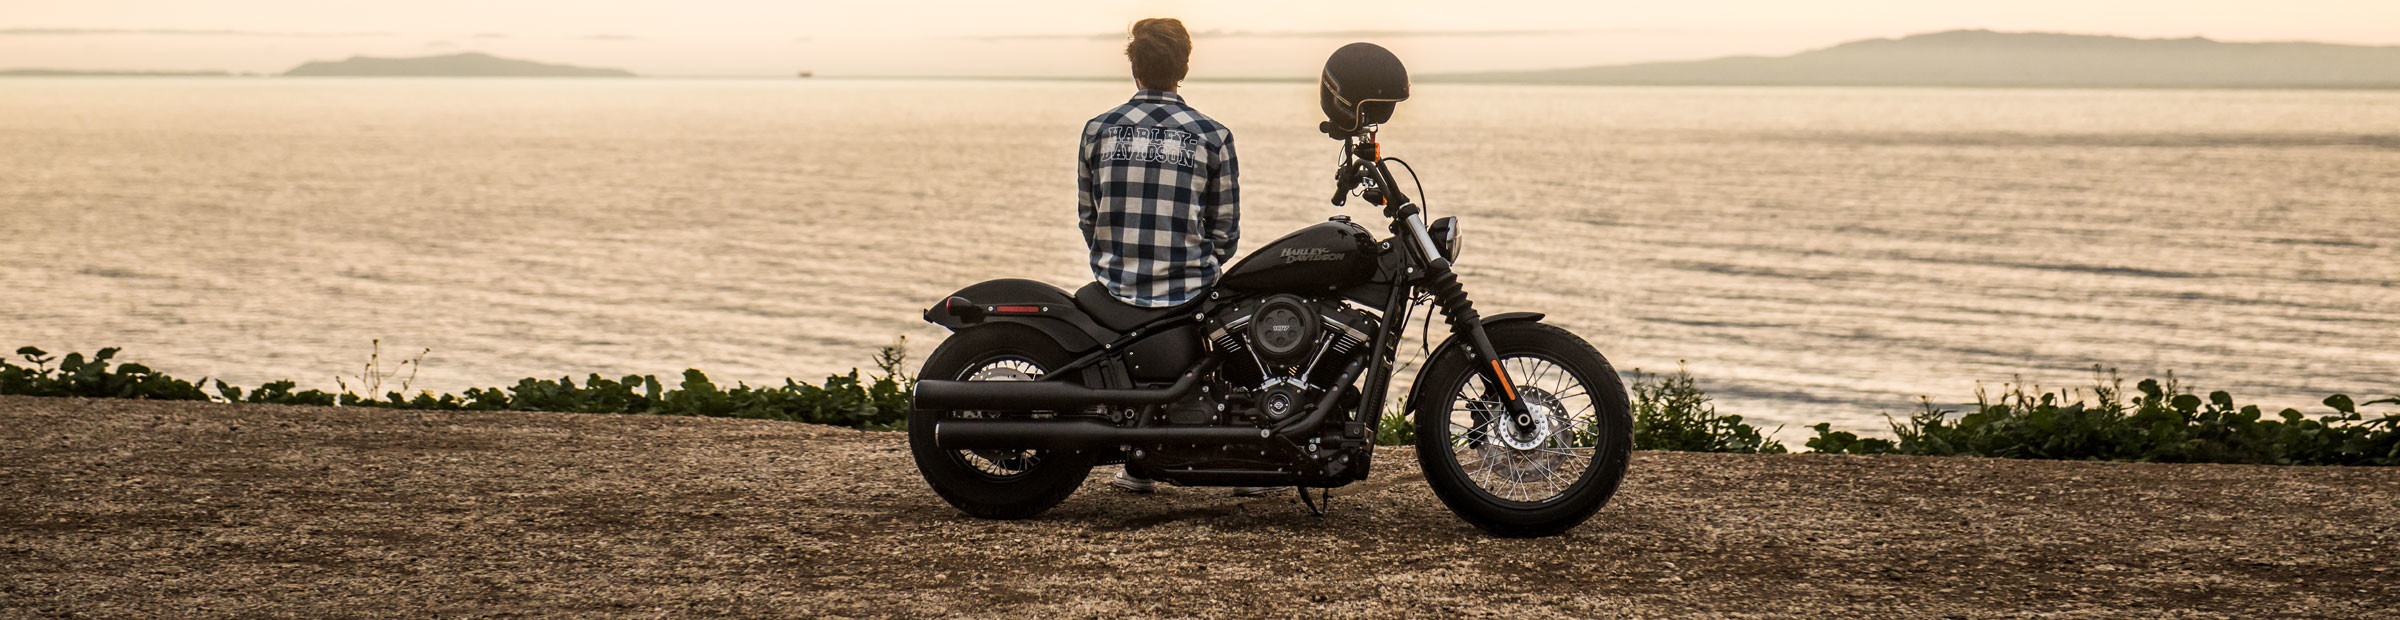 Schedule a Re-Ride at Harley-Davidson® of New Port Richey